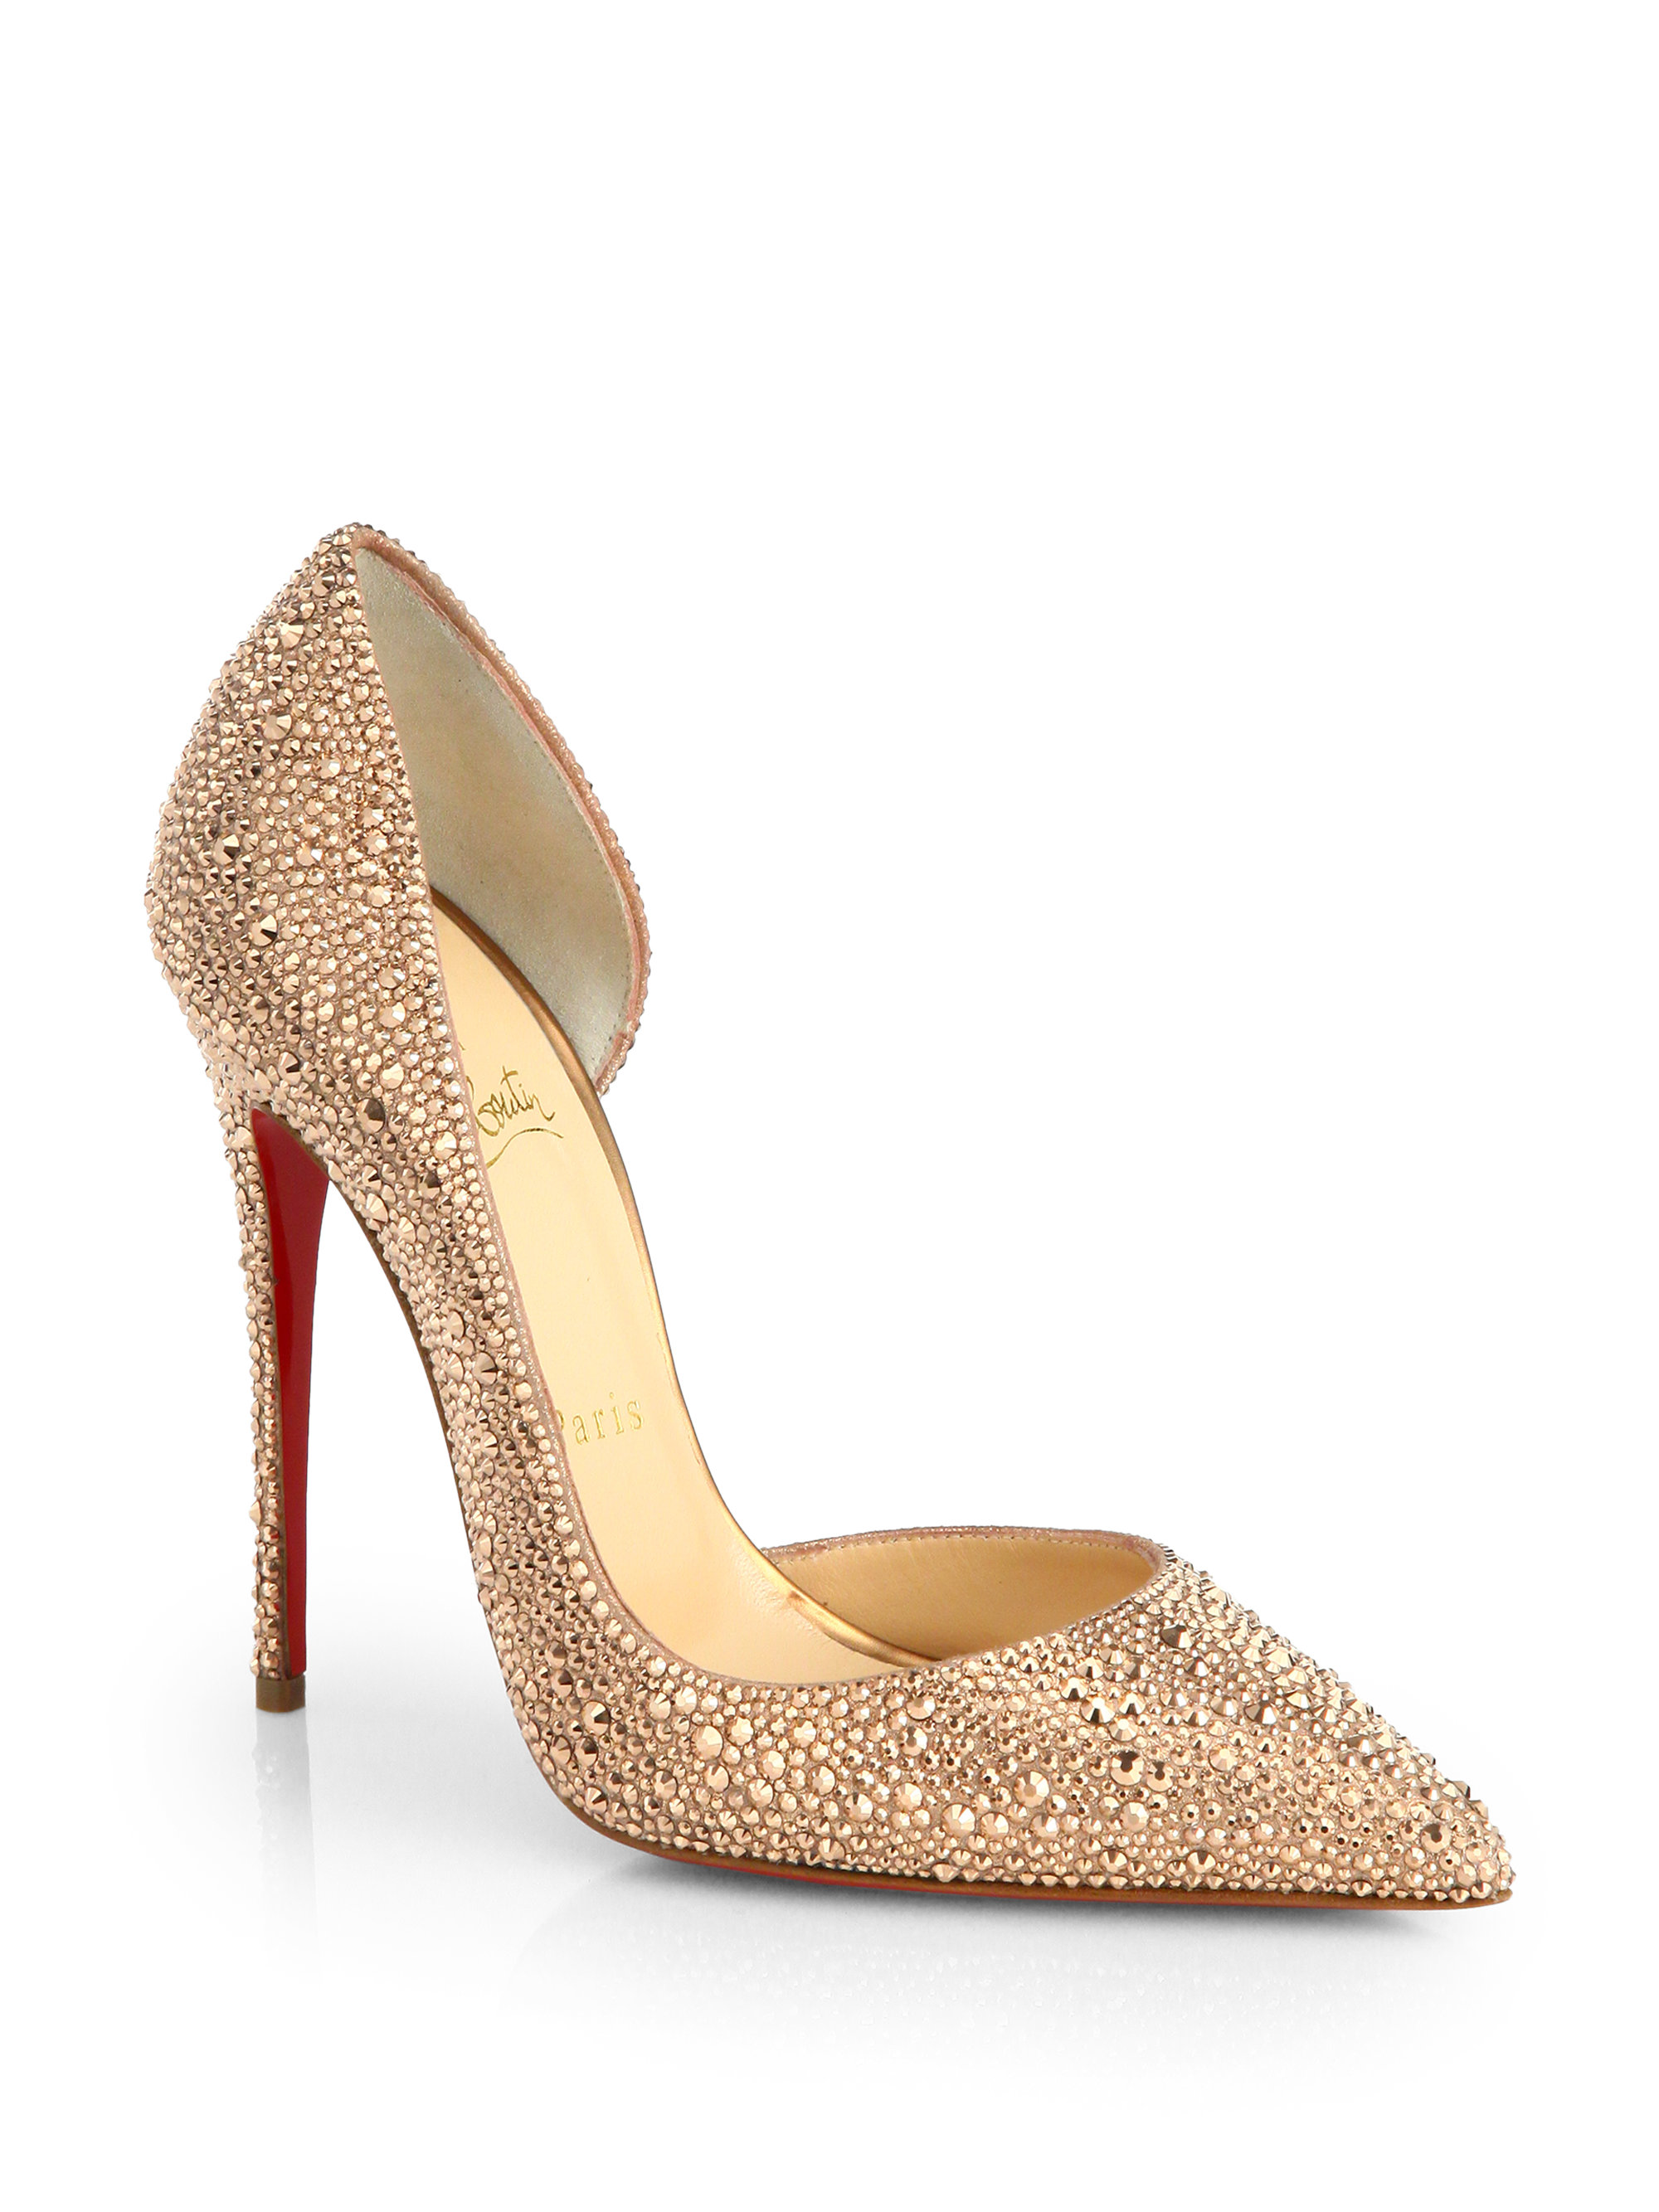 19463bd0a2a3 ... where to buy lyst christian louboutin iriza strass crystal pumps in  metallic 424d9 a3868